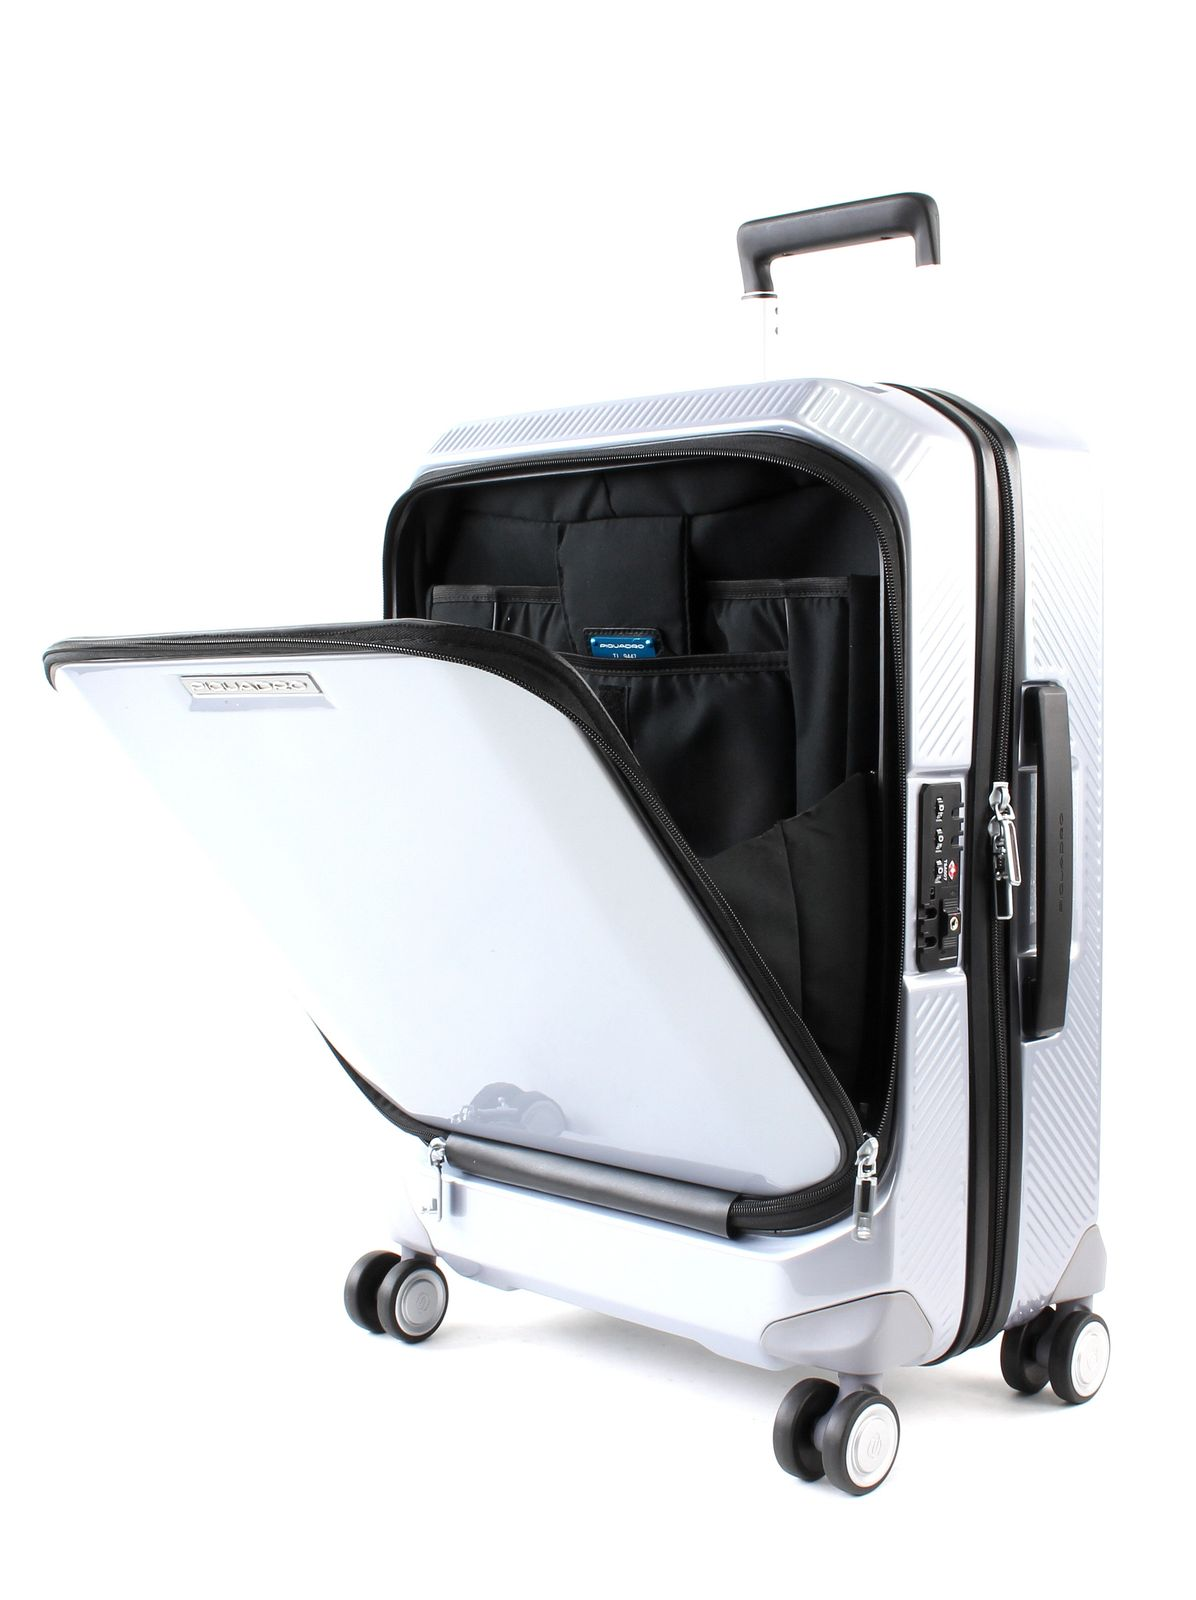 fe5761095c4156 ... To ClosePIQUADRO Cubica Trolley S Grigio / 245,00 €*Tap To CloseOnly  possible if you pay by Paypal, Amazon Payments, Credit Card, Cash on  Delivery, ...